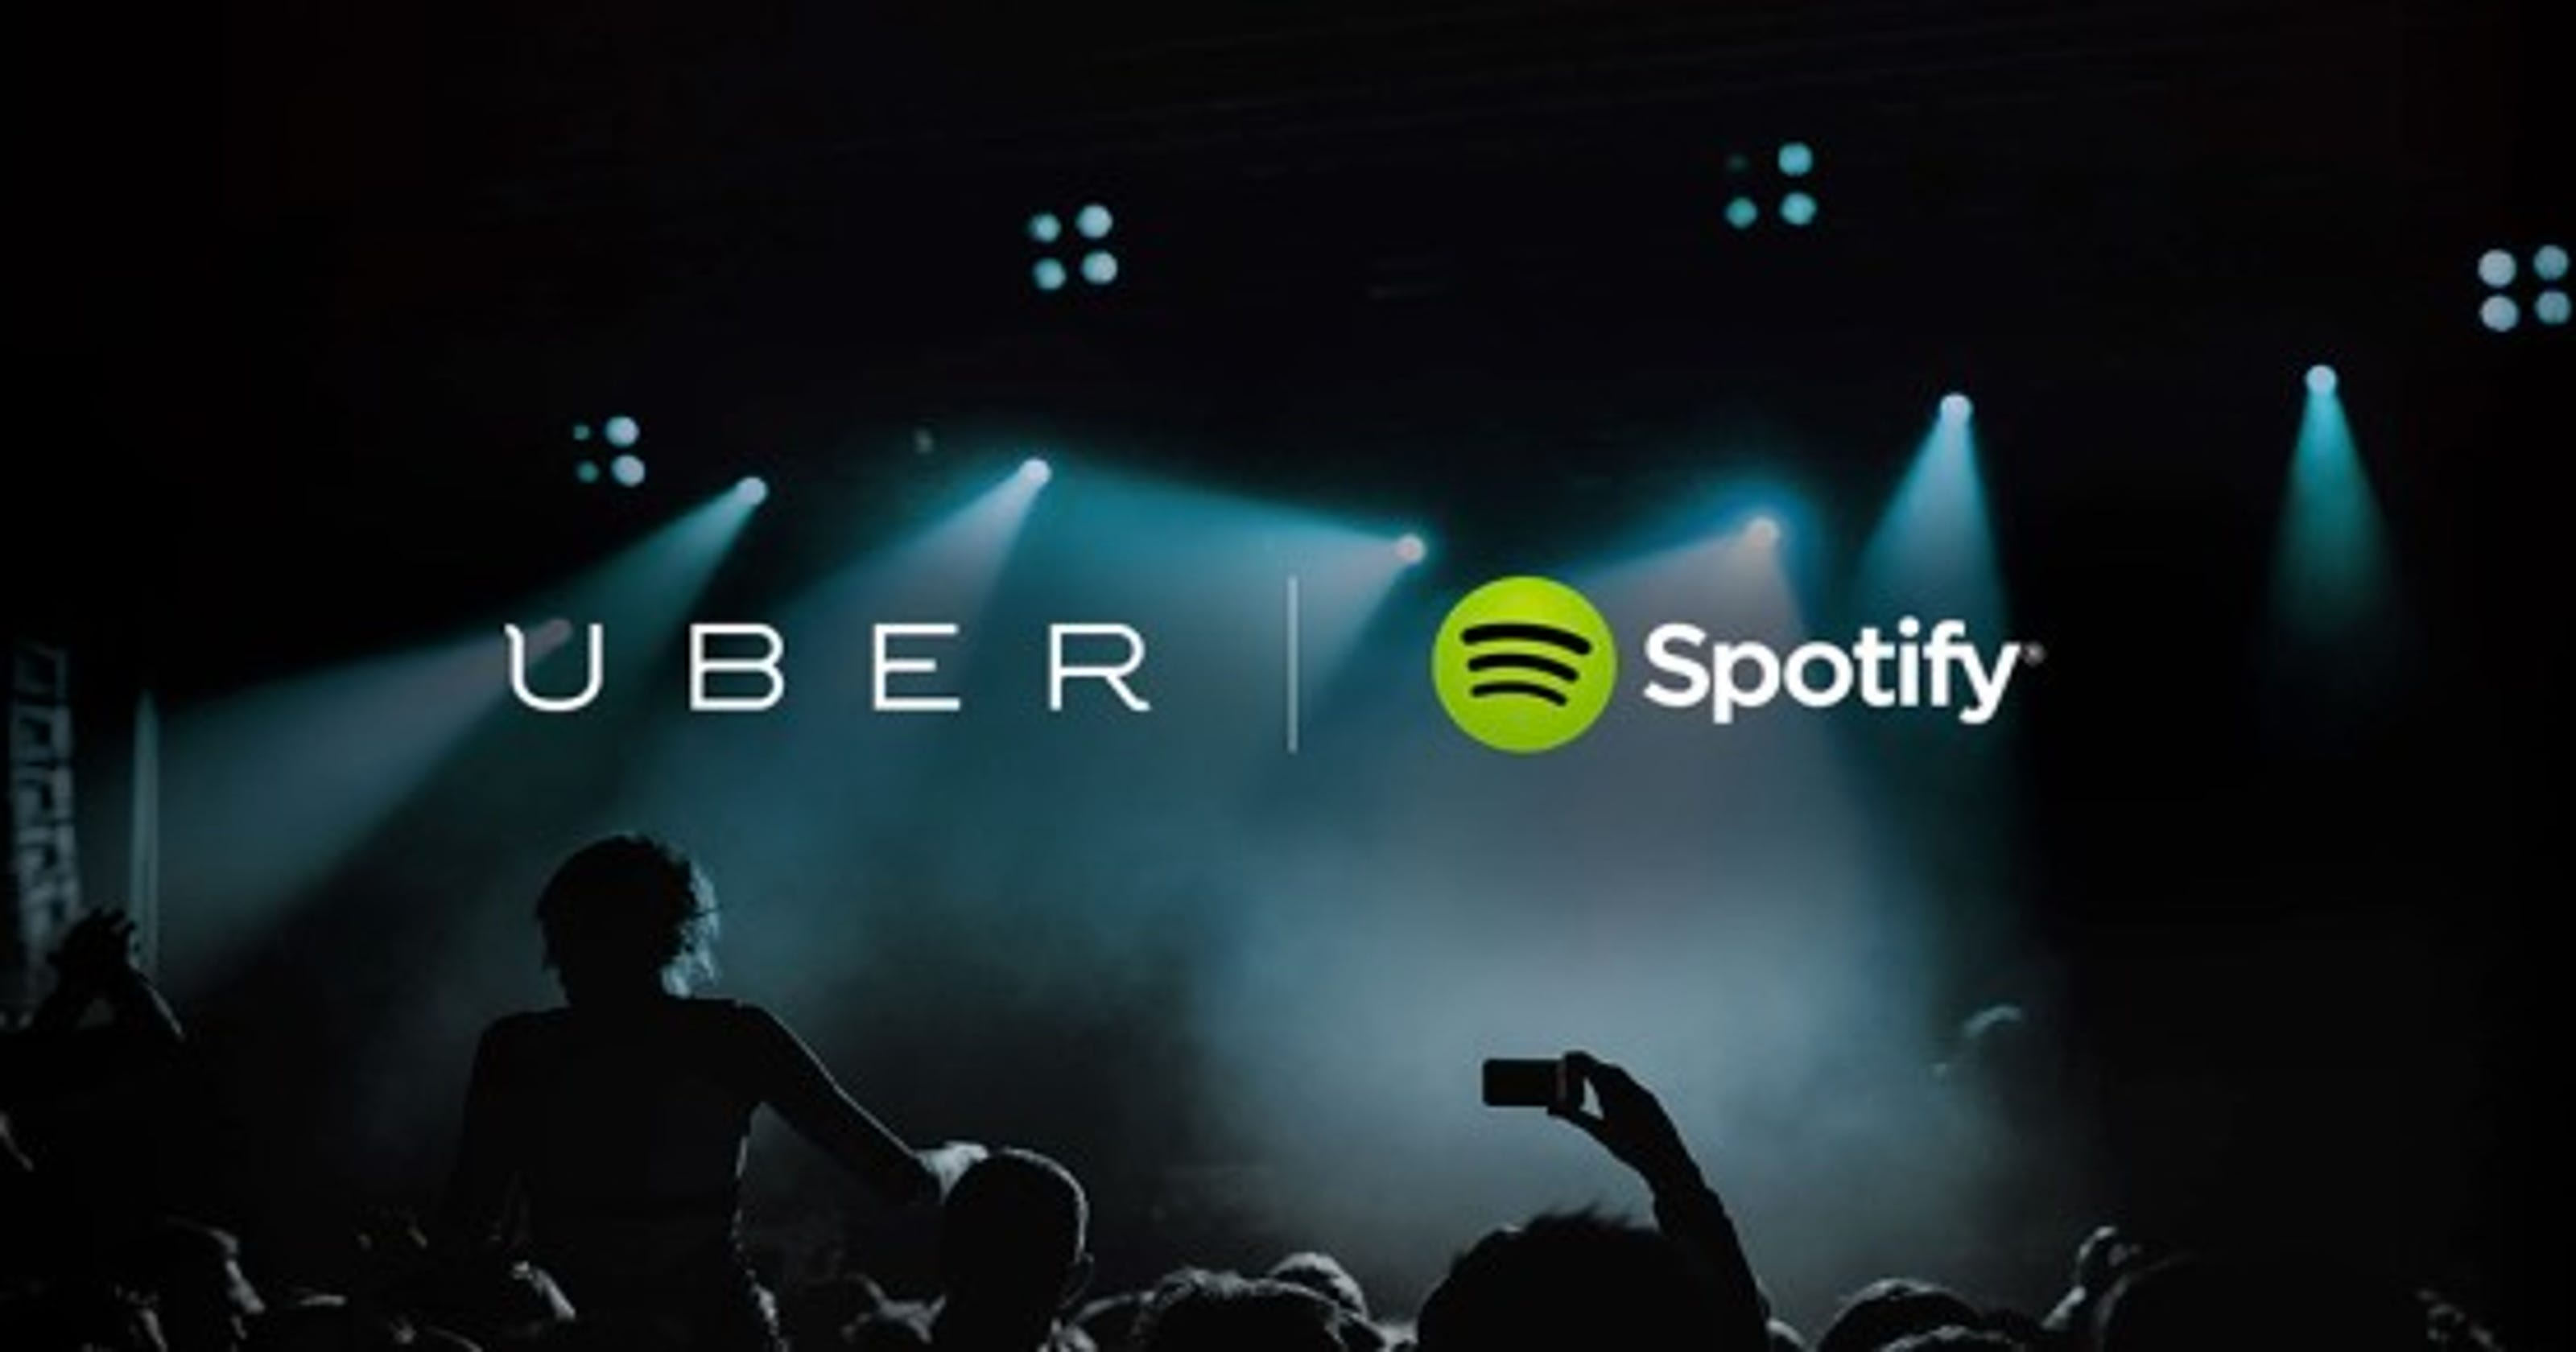 Spotify alliance with Uber not as trivial as first thought